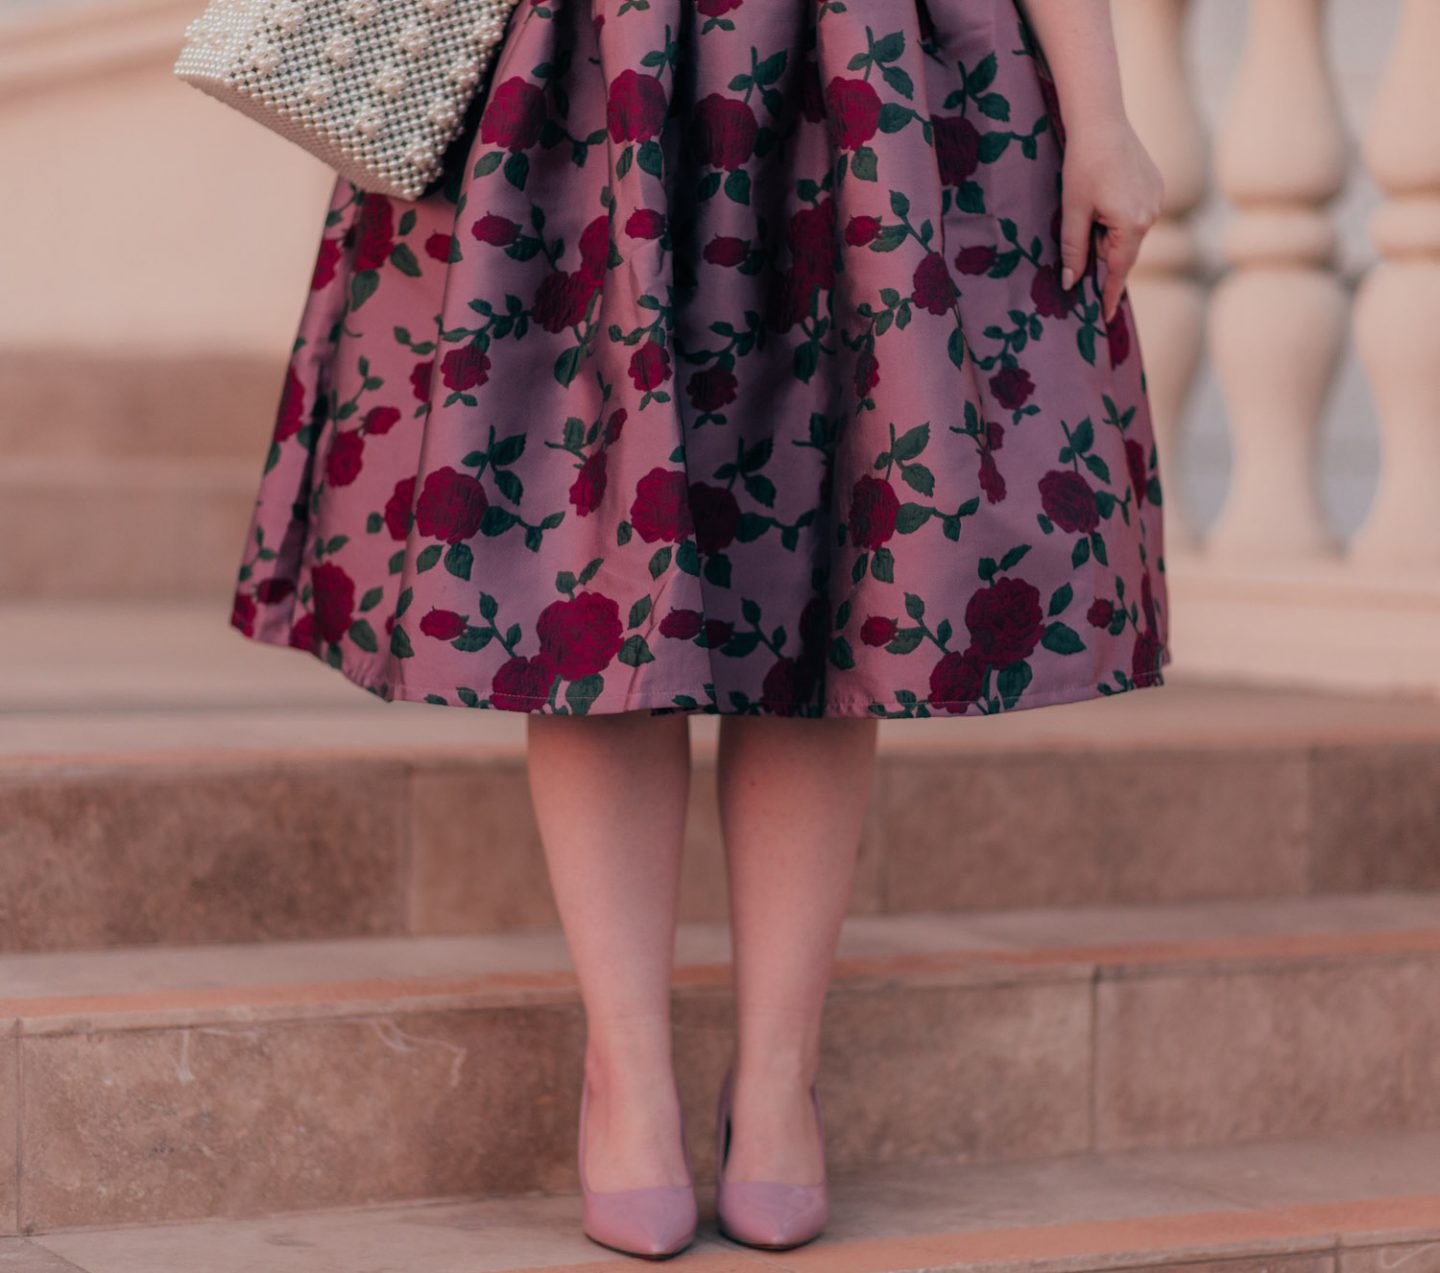 Feminine Fashion Blogger Elizabeth Hugen of Lizzie in Lace shares 5 Easy Ways to Dress More Feminine and wear a pink outfit with floral skirt